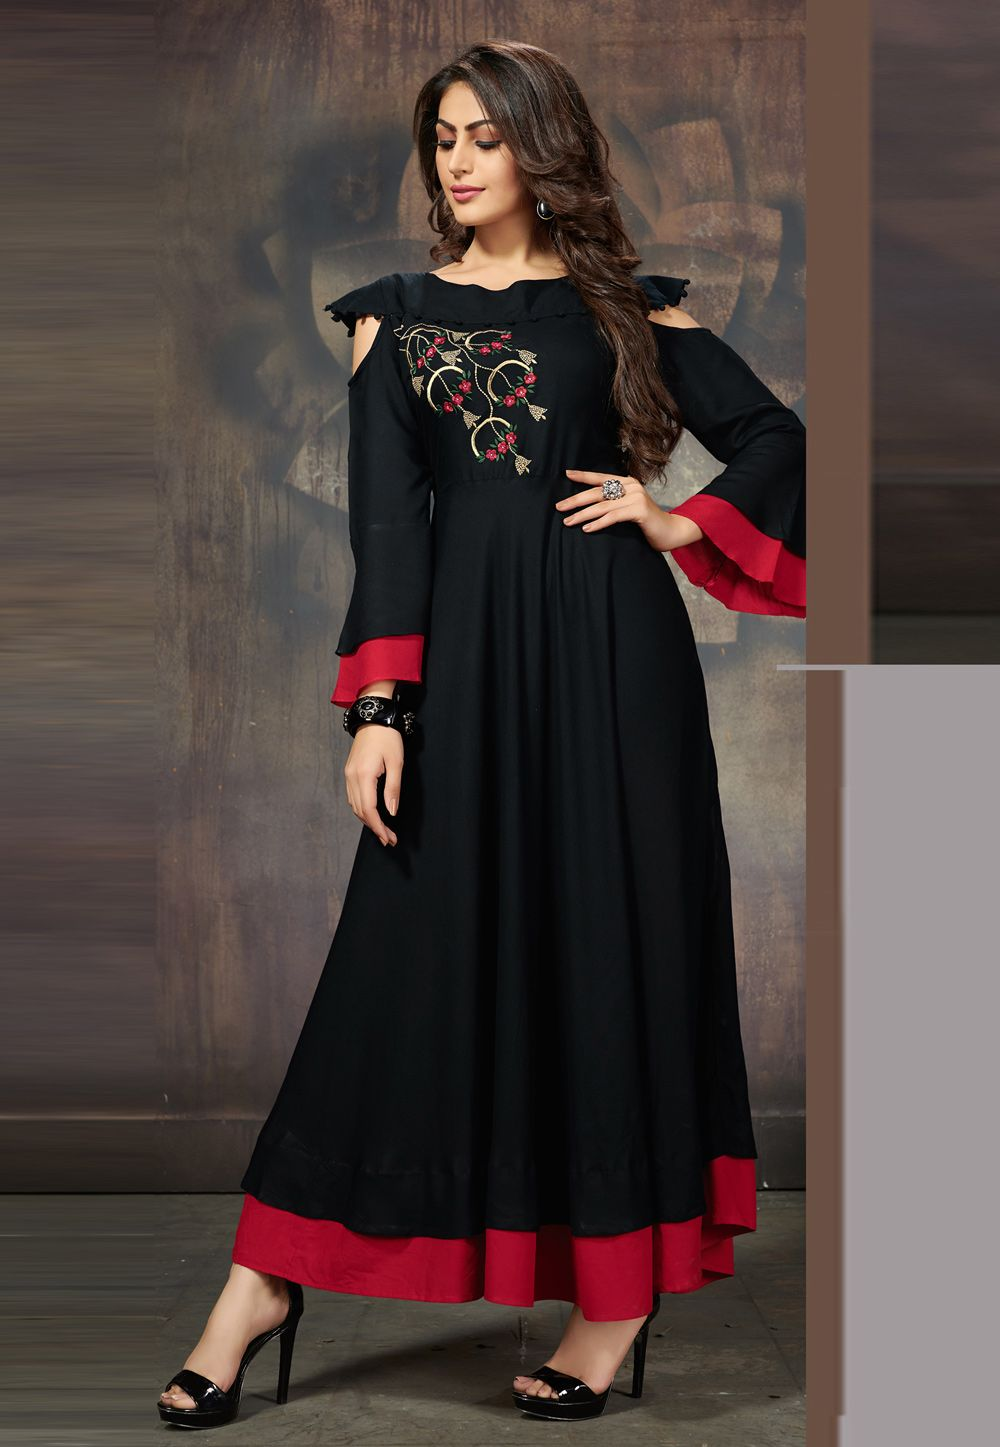 e1b00a944a Shop Black Rayon Readymade Kurti 163444 online at best price from vast  collection of designer kurti at Indianclothstore.com.